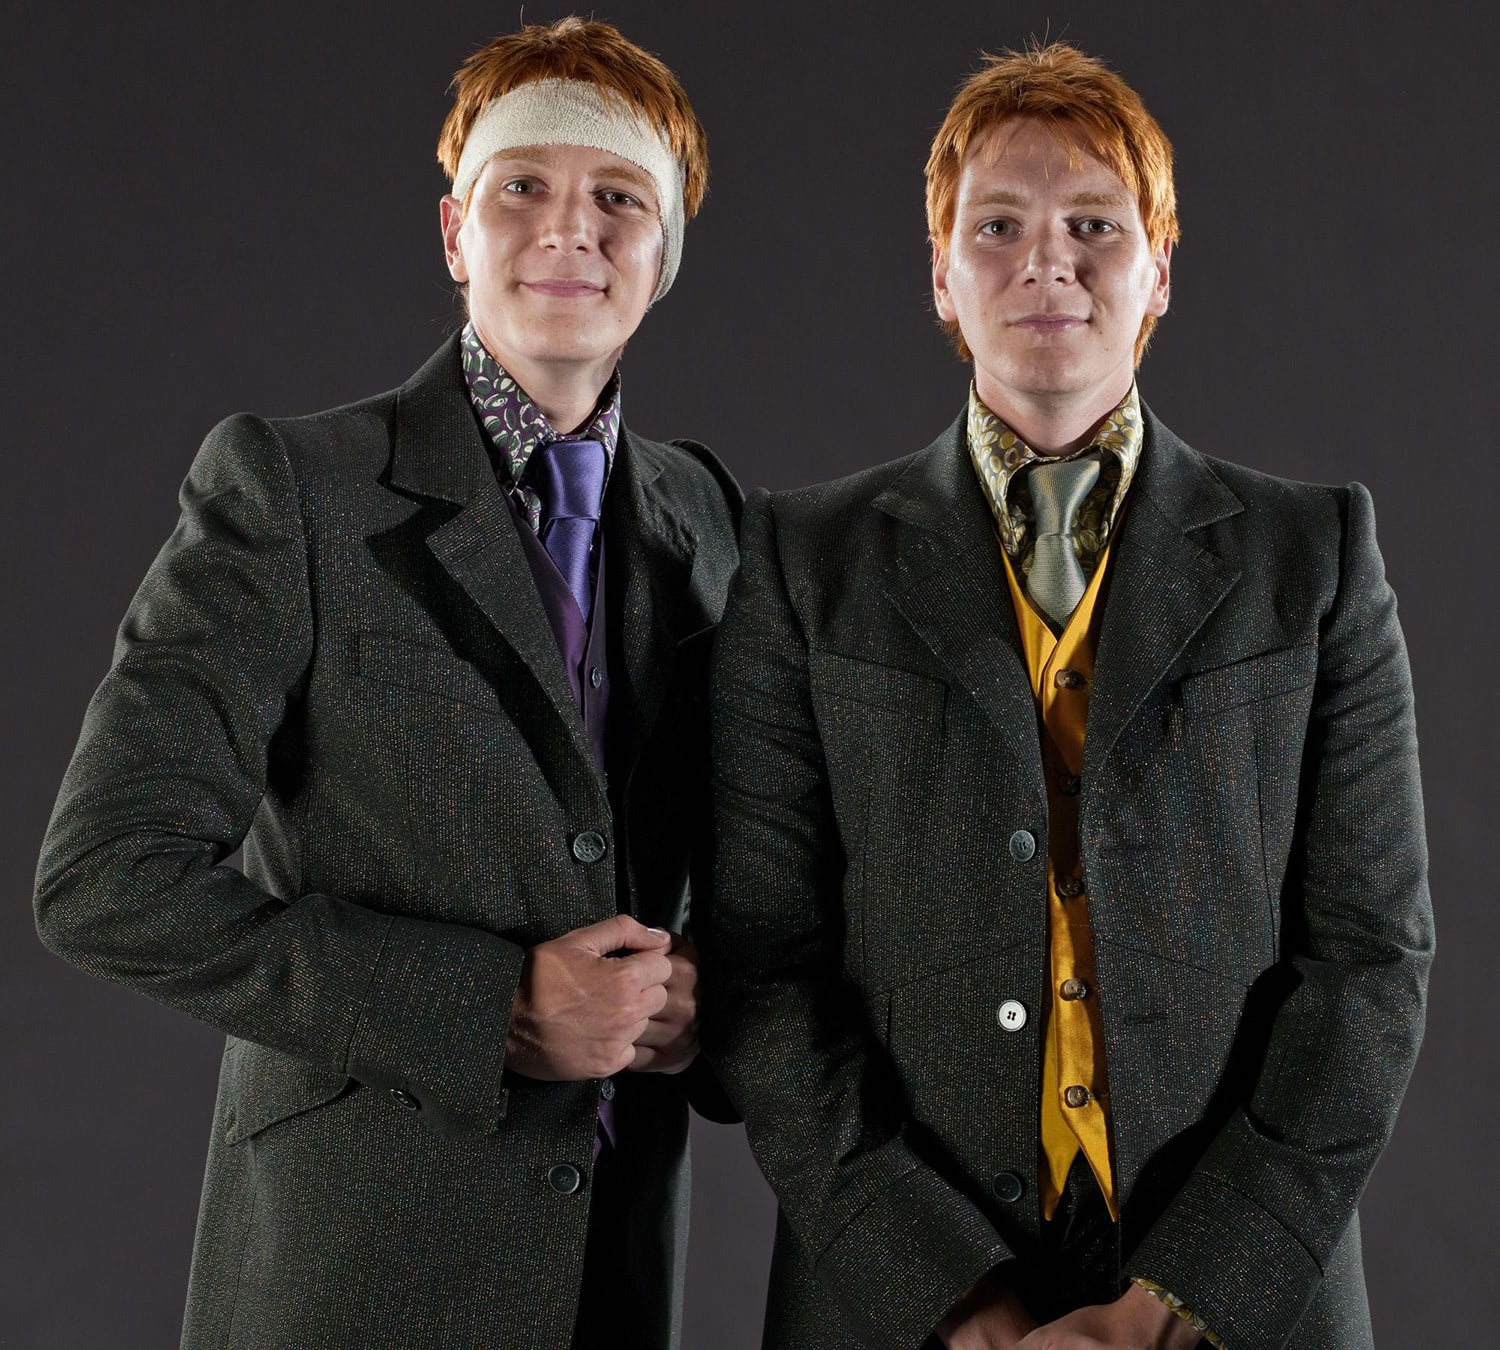 Portrait of Fred and George Weasley